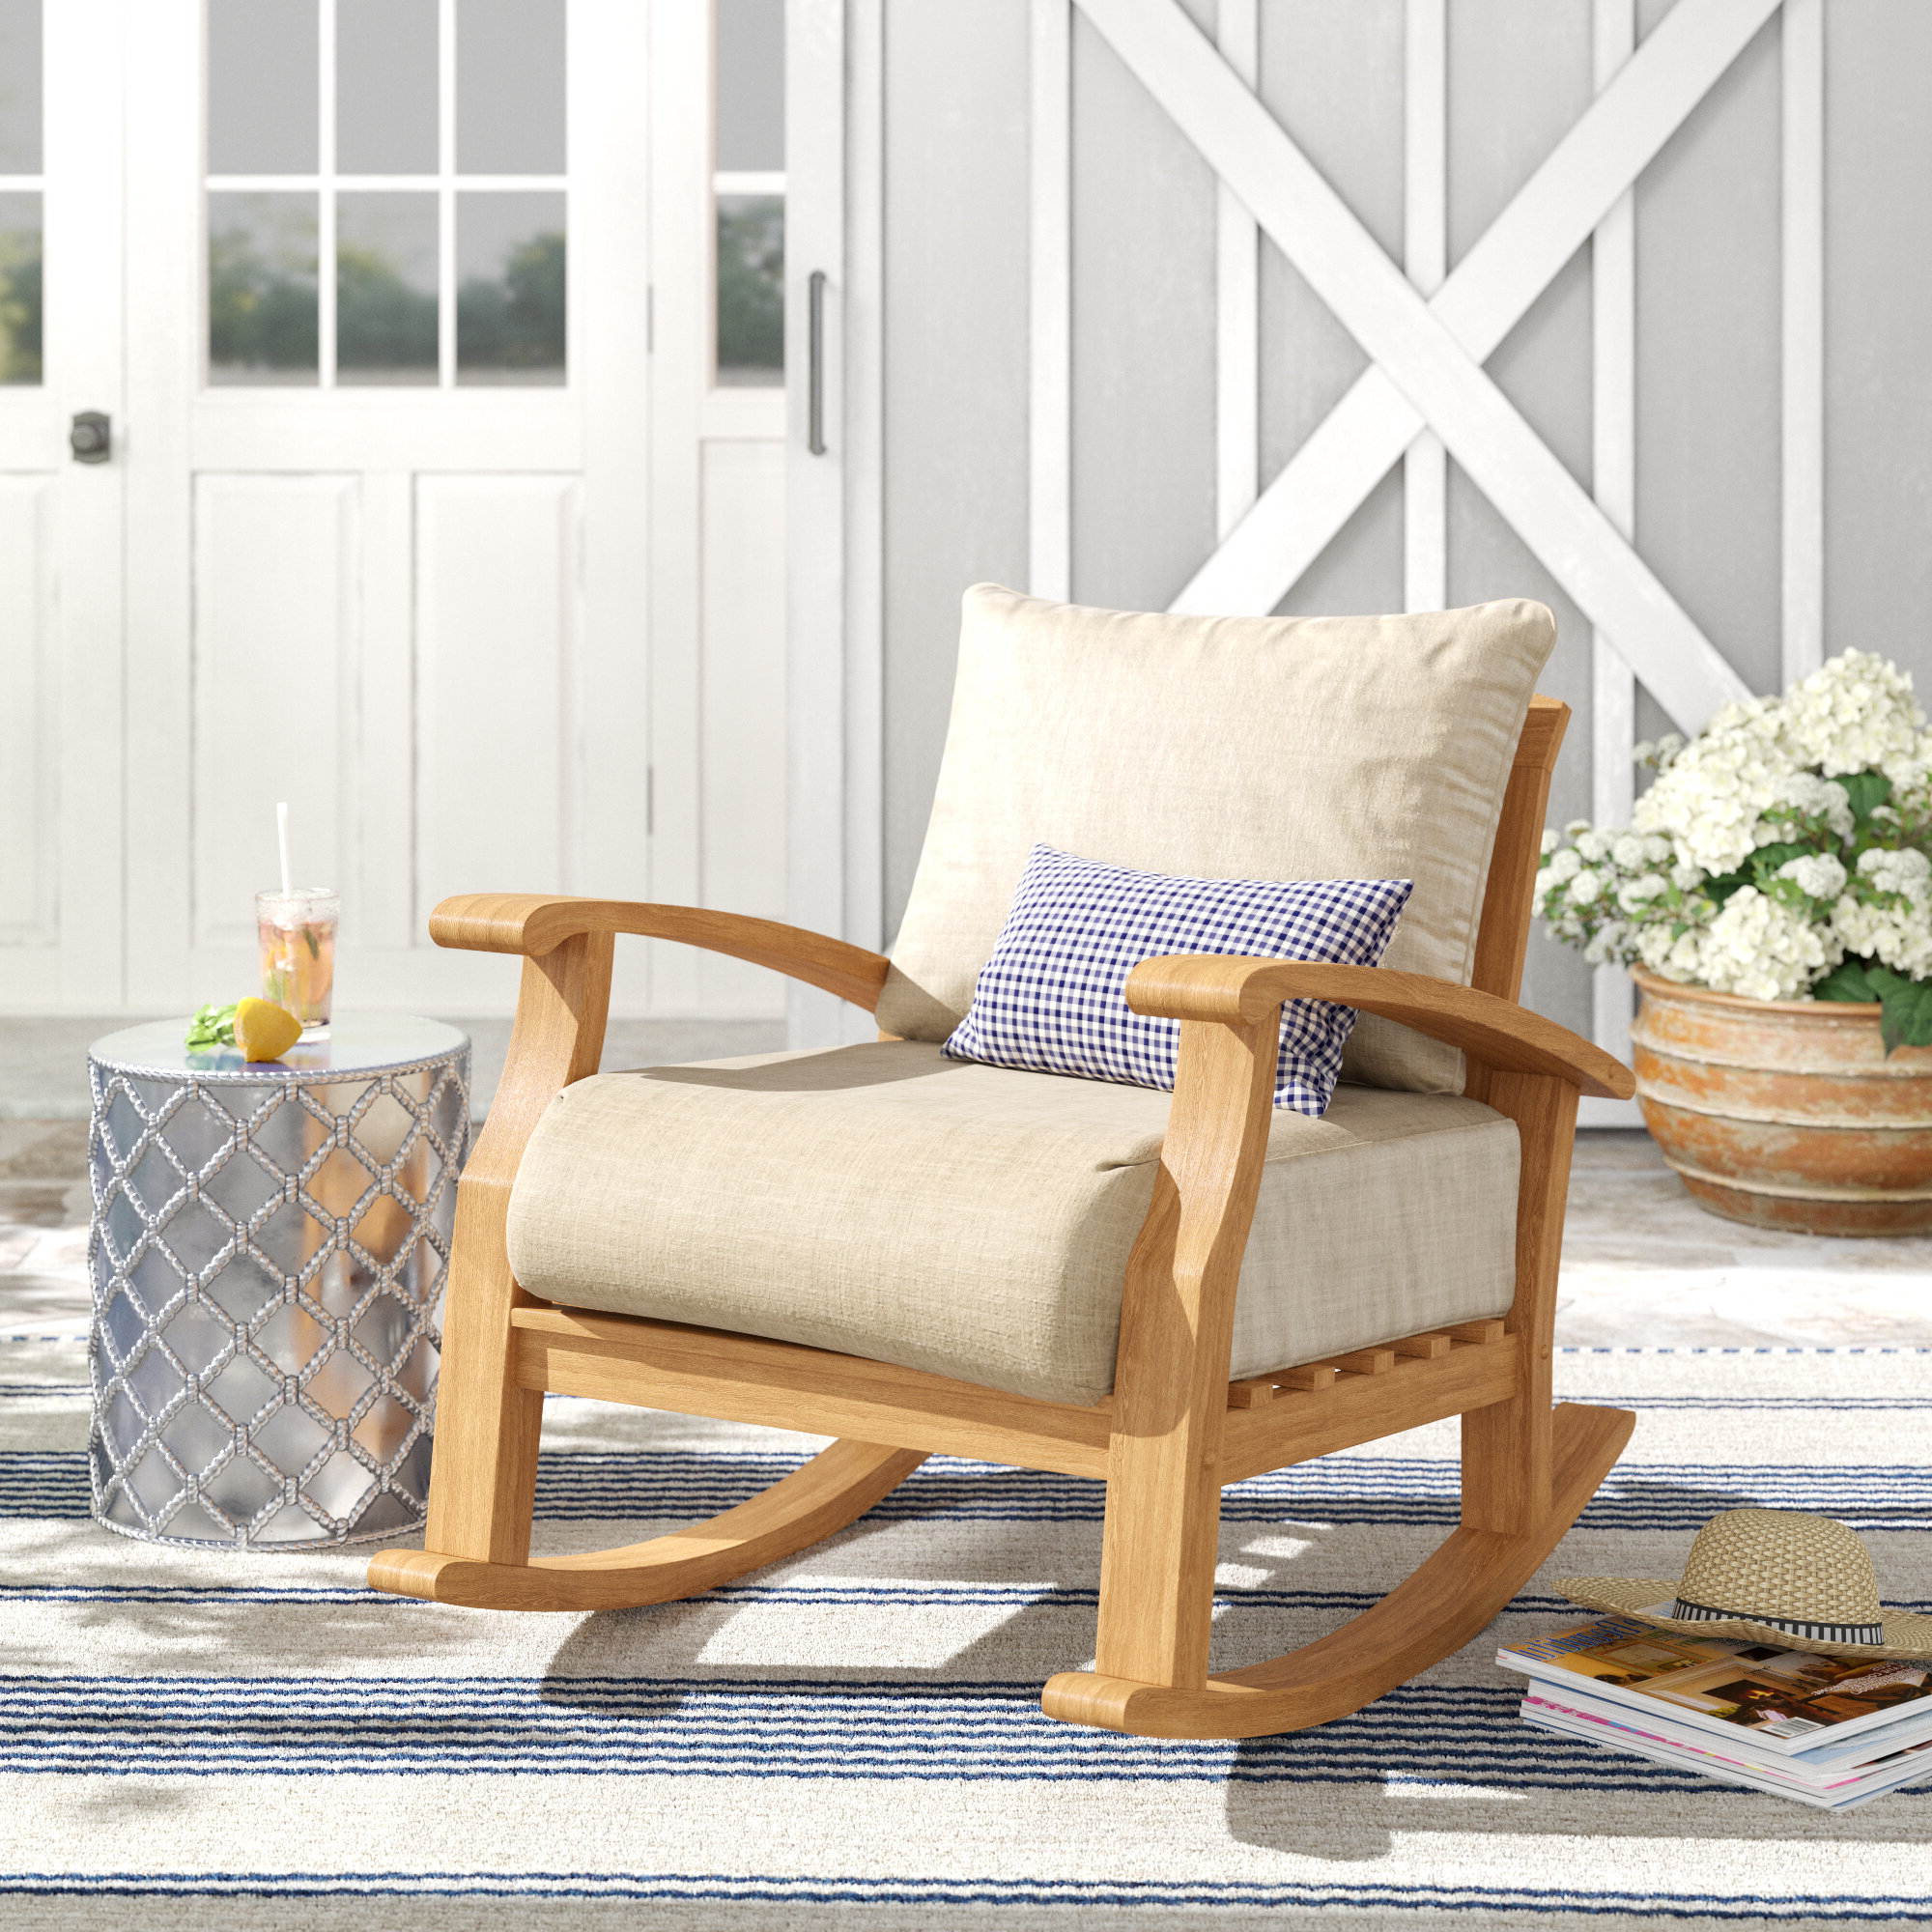 Preferred Summerton Teak Loveseats With Cushions With Summerton Teak Rocking Chair With Cushions (View 9 of 20)